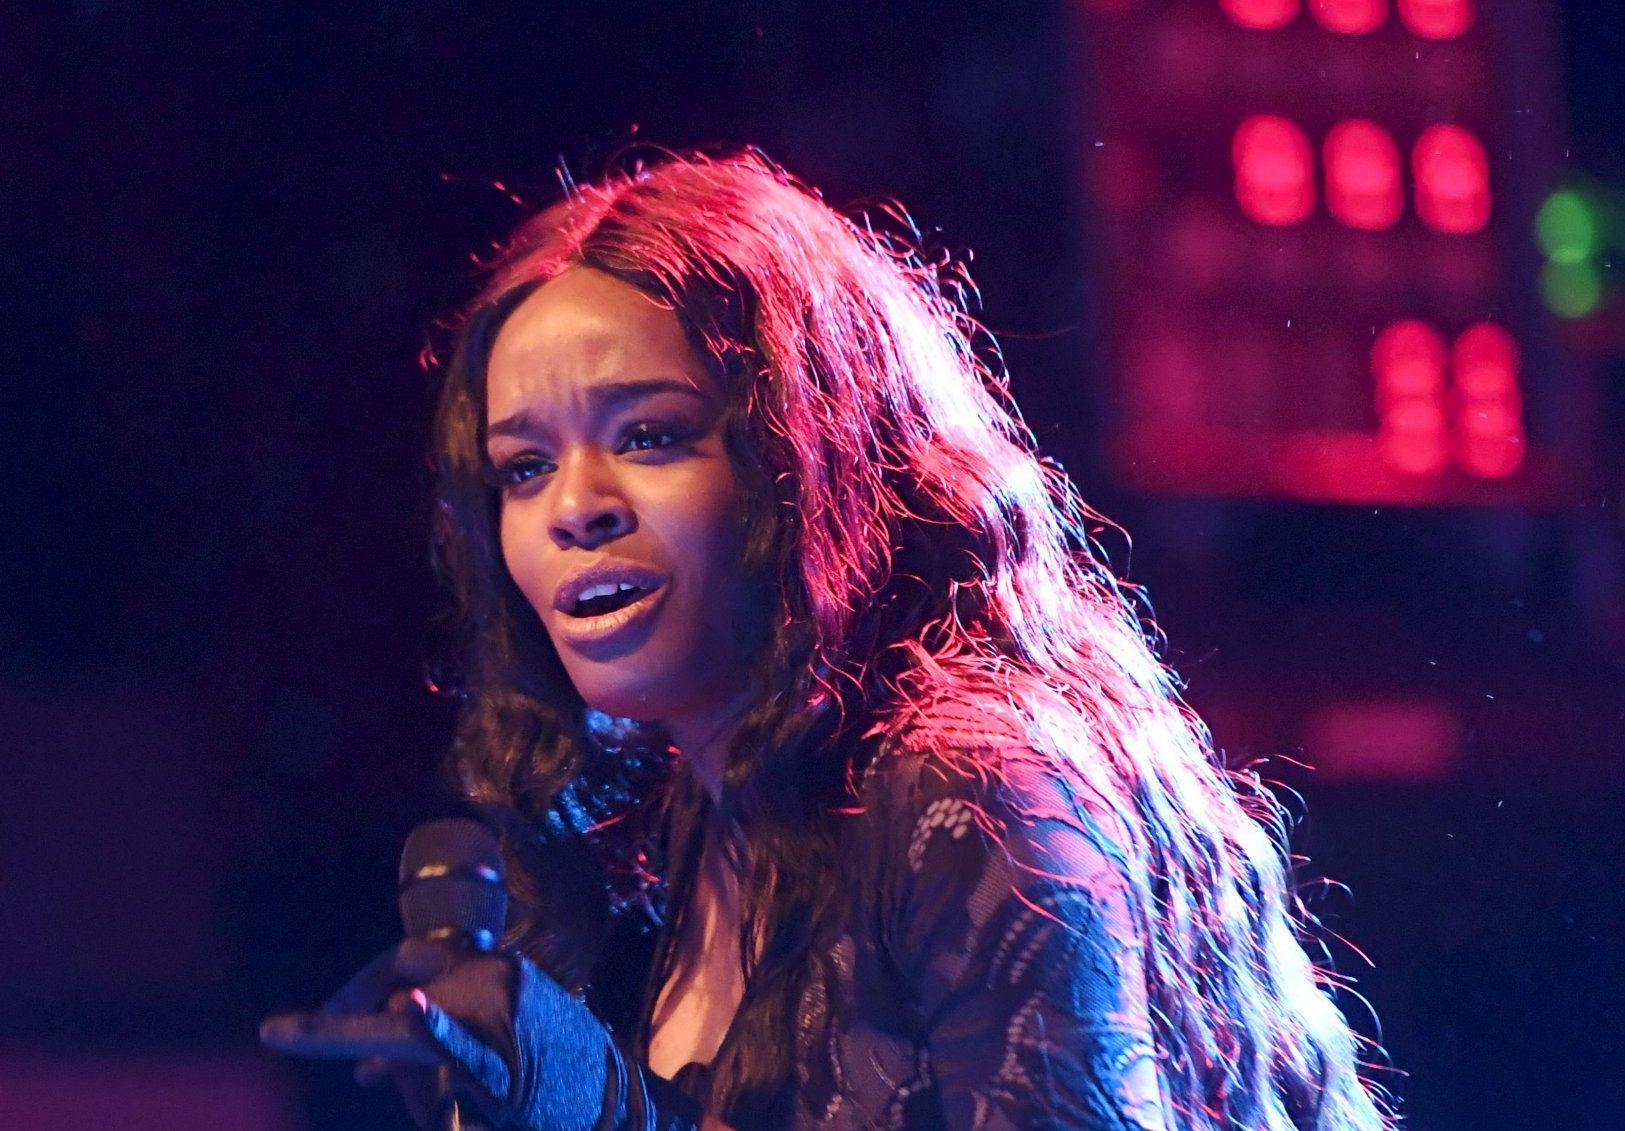 Mandatory Credit: Photo by Markku Ulander/REX/Shutterstock (9072529d) Azealia Banks Azelia Banks in concert at the Circus Helsinki, Finland - 24 Sep 2017